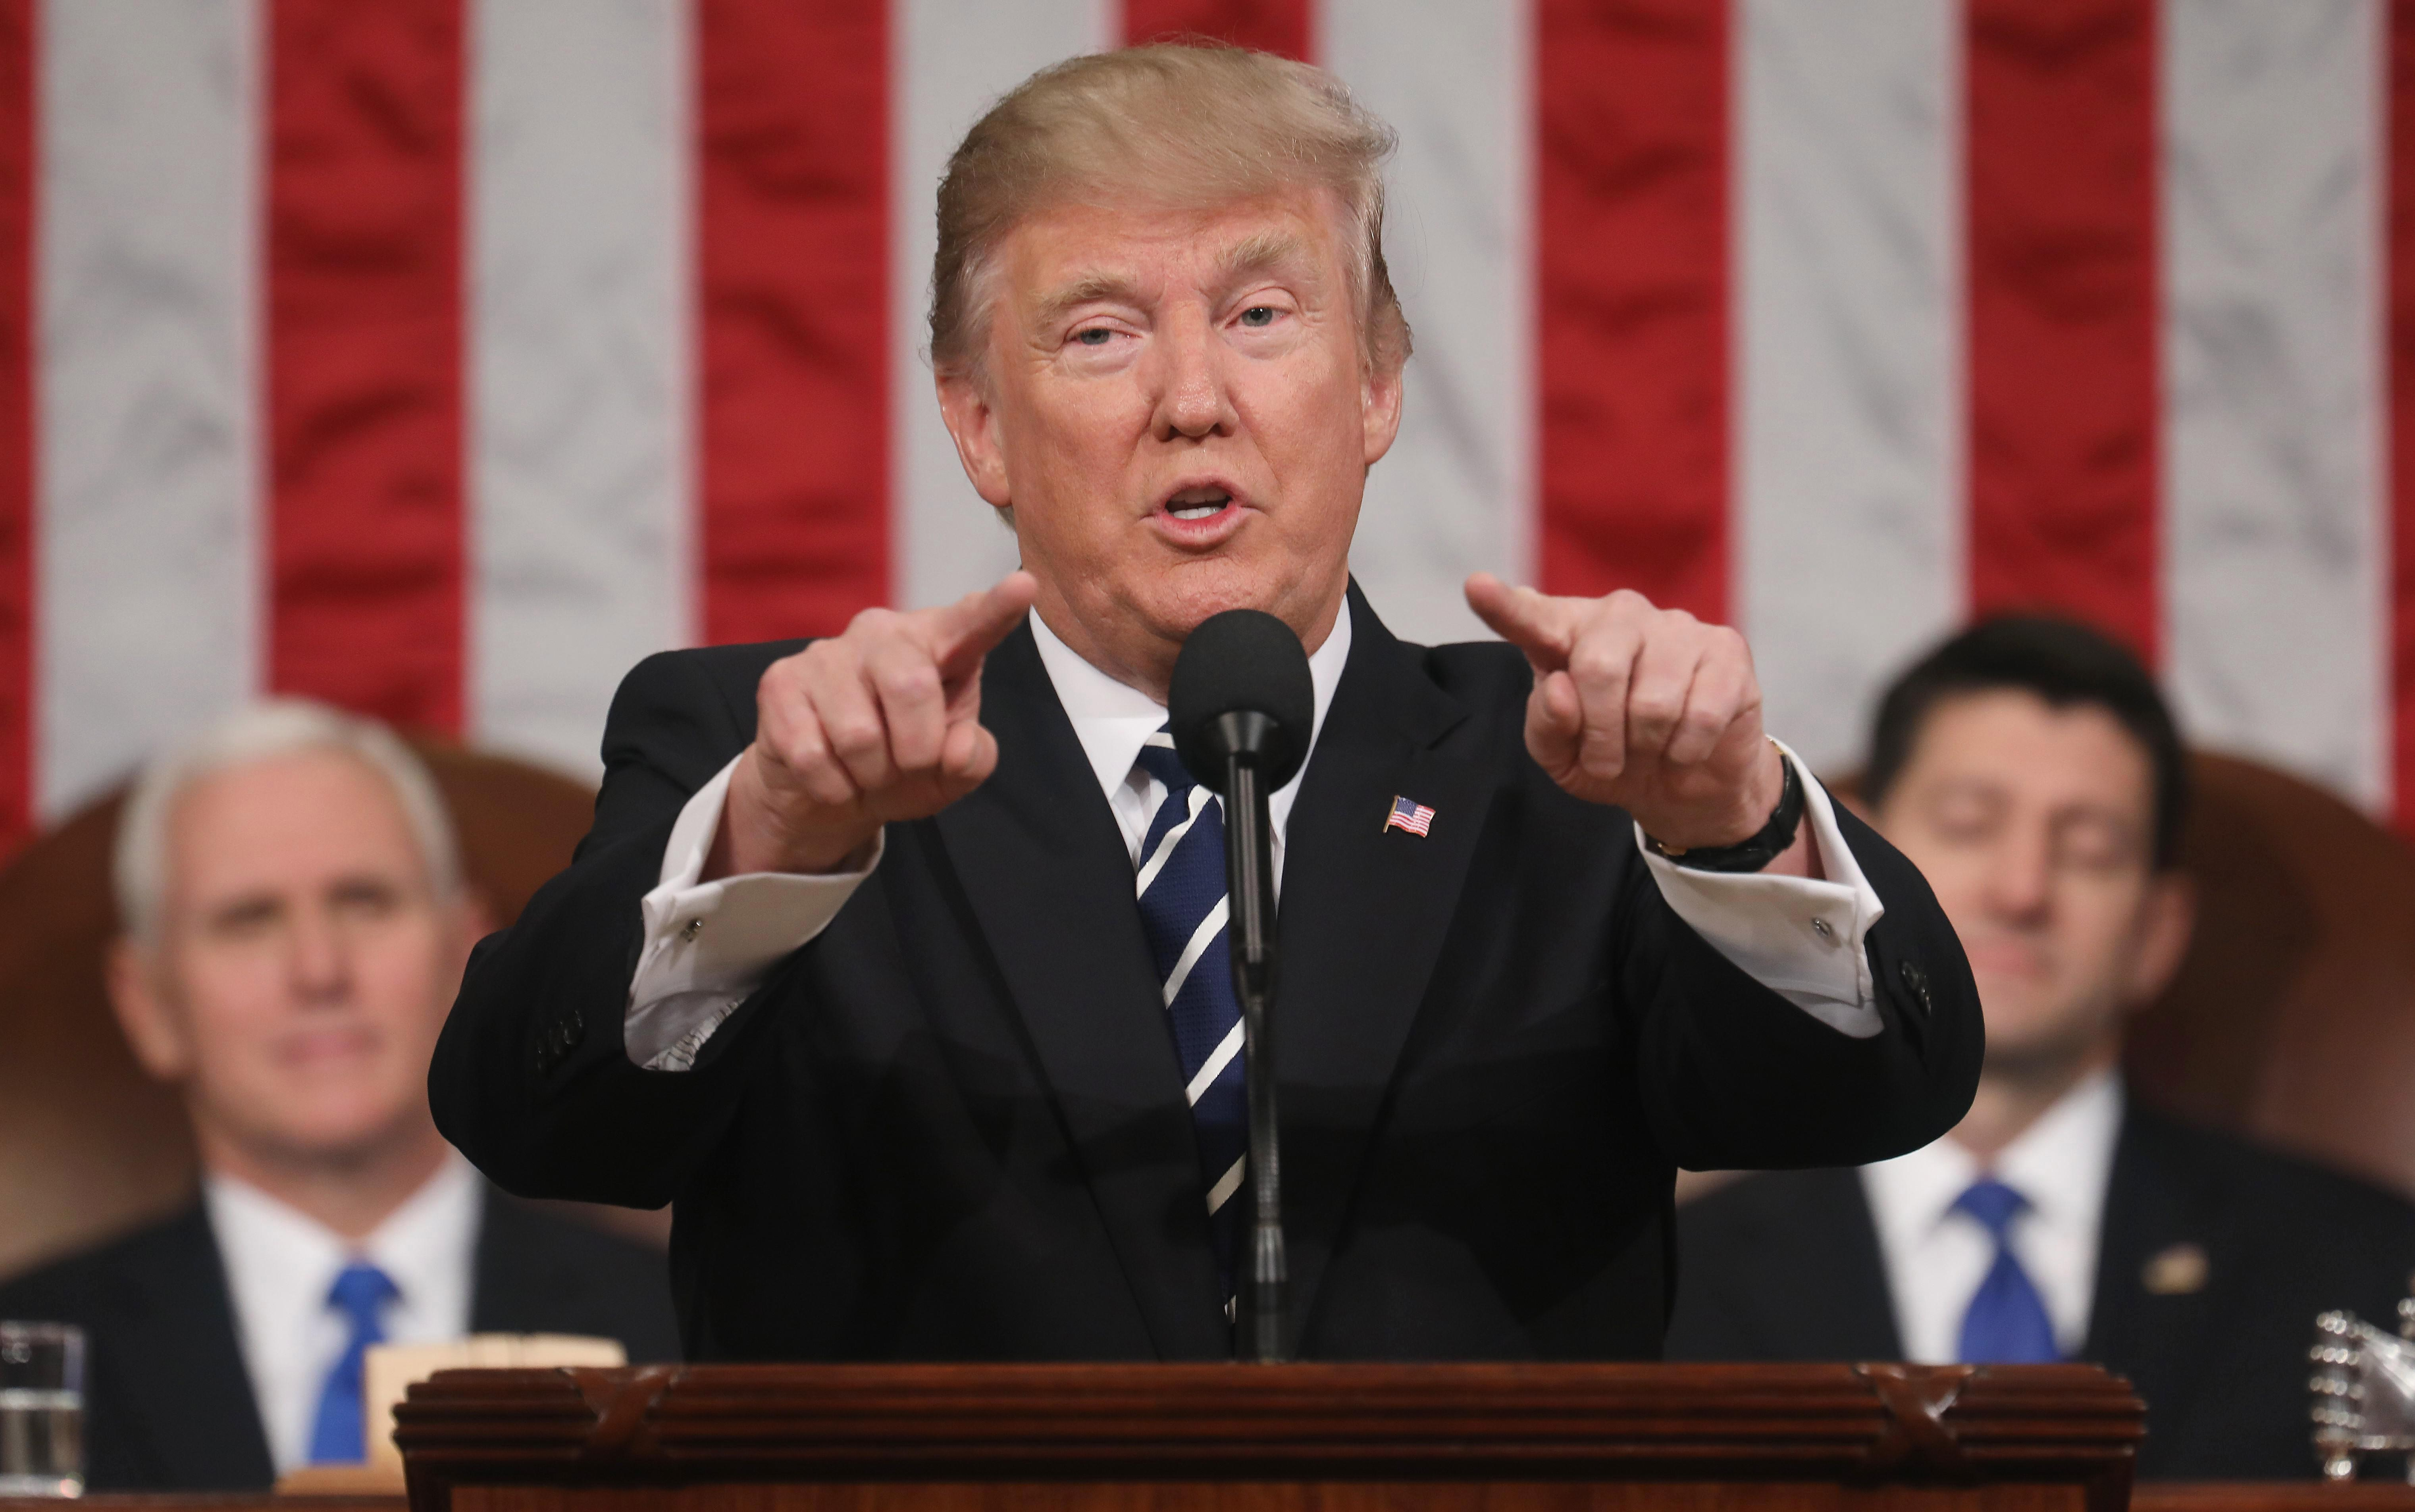 When is the State Of The Union address 2018, what will Donald Trump say in his speech and who is Joe Kennedy III?